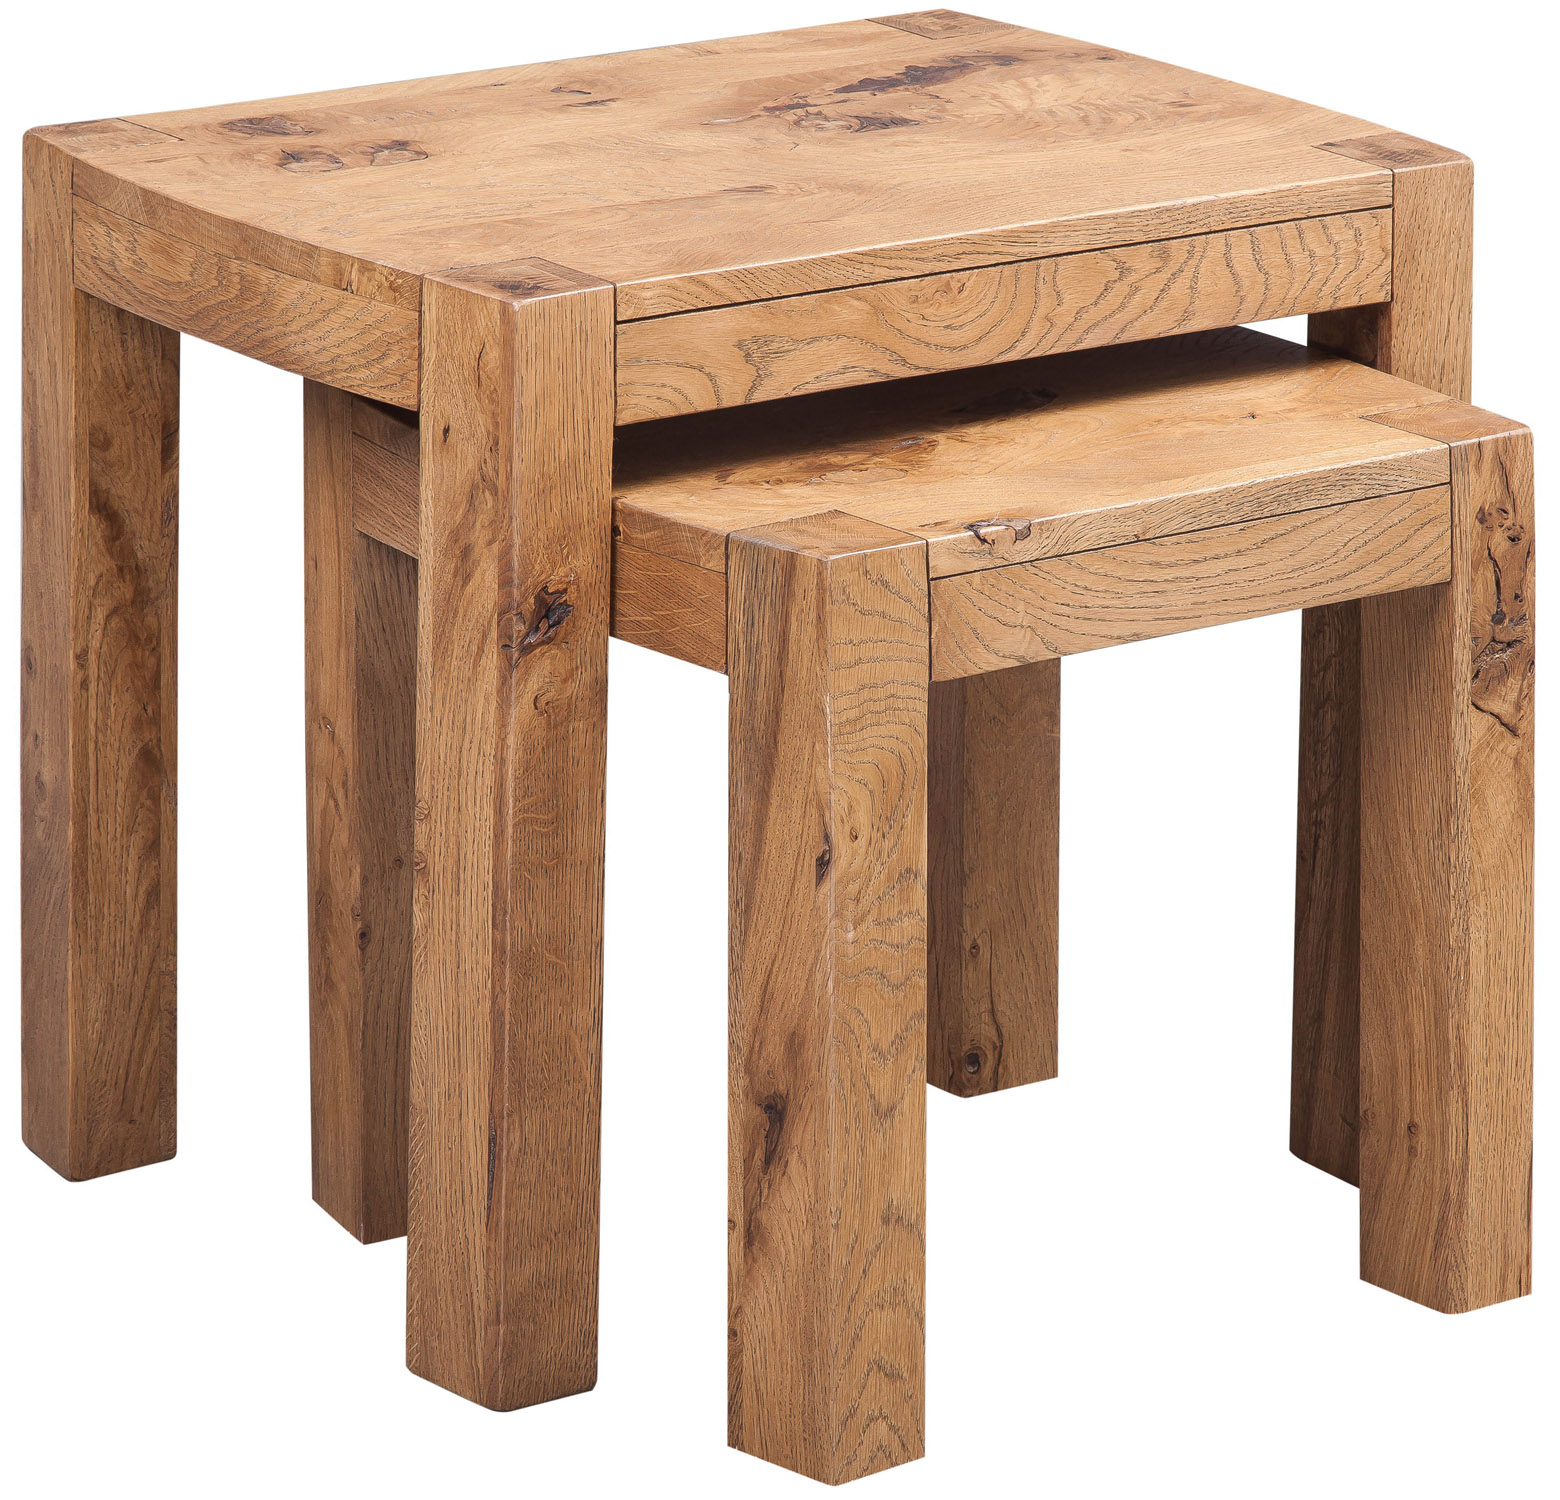 Details about distressed oak nest of 2 tables solid oak occasional coffee table set